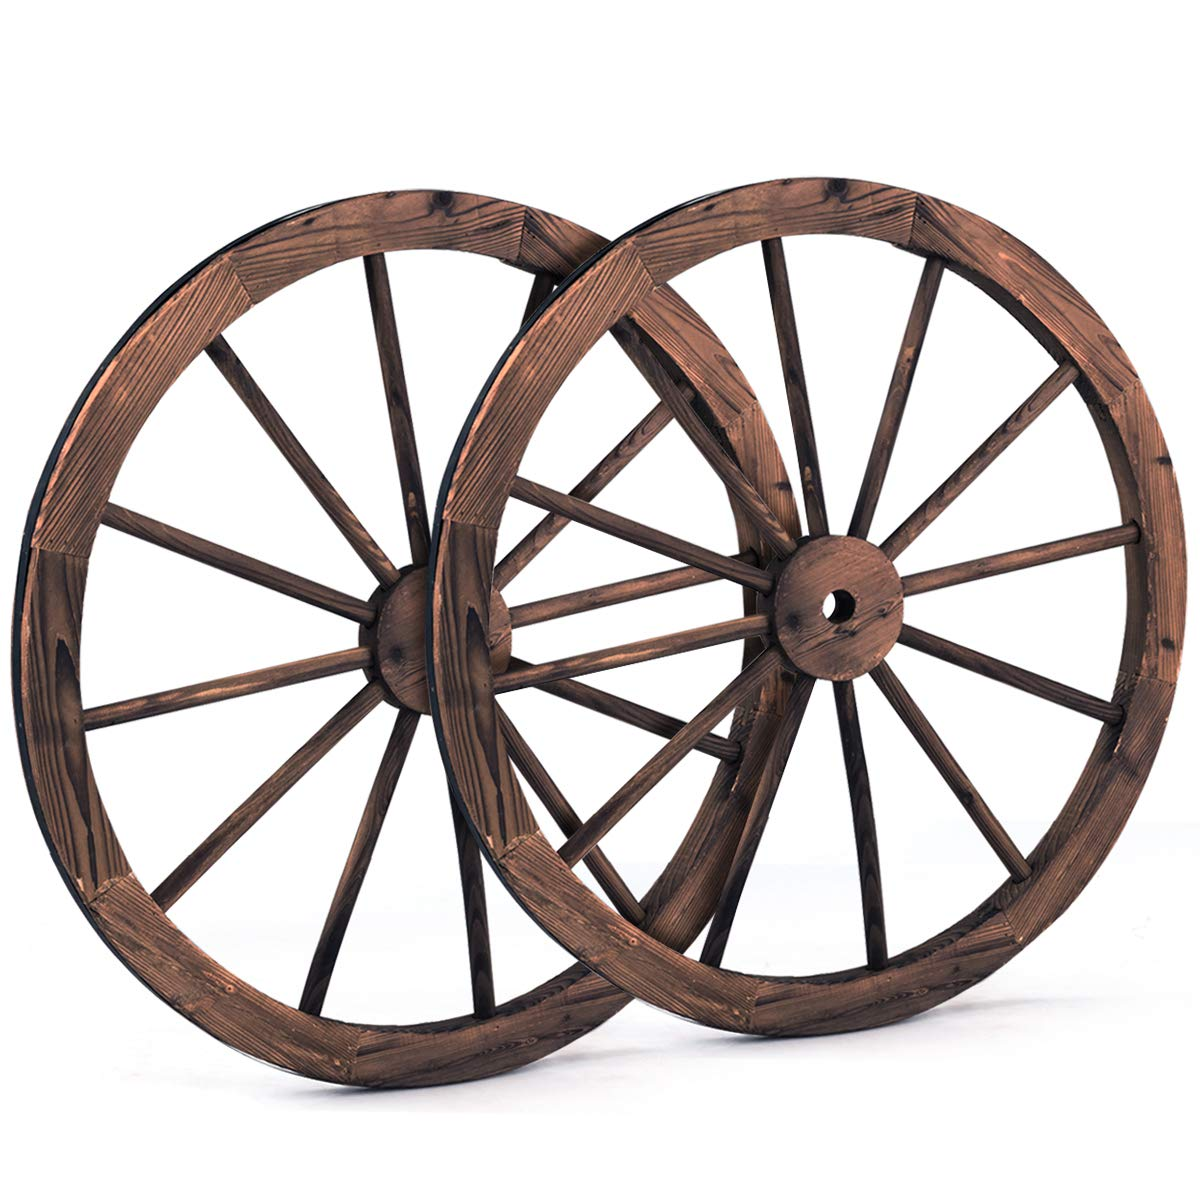 Giantex 30-Inch Set of Two Decorative Wooden Wheel, Decorative Wall Old Western Style Wooden Garden Wagon Wheel with Steel Rim, Fir Treated by Carbonization, Suitable for Bar, Studio and Home (30'') by Giantex